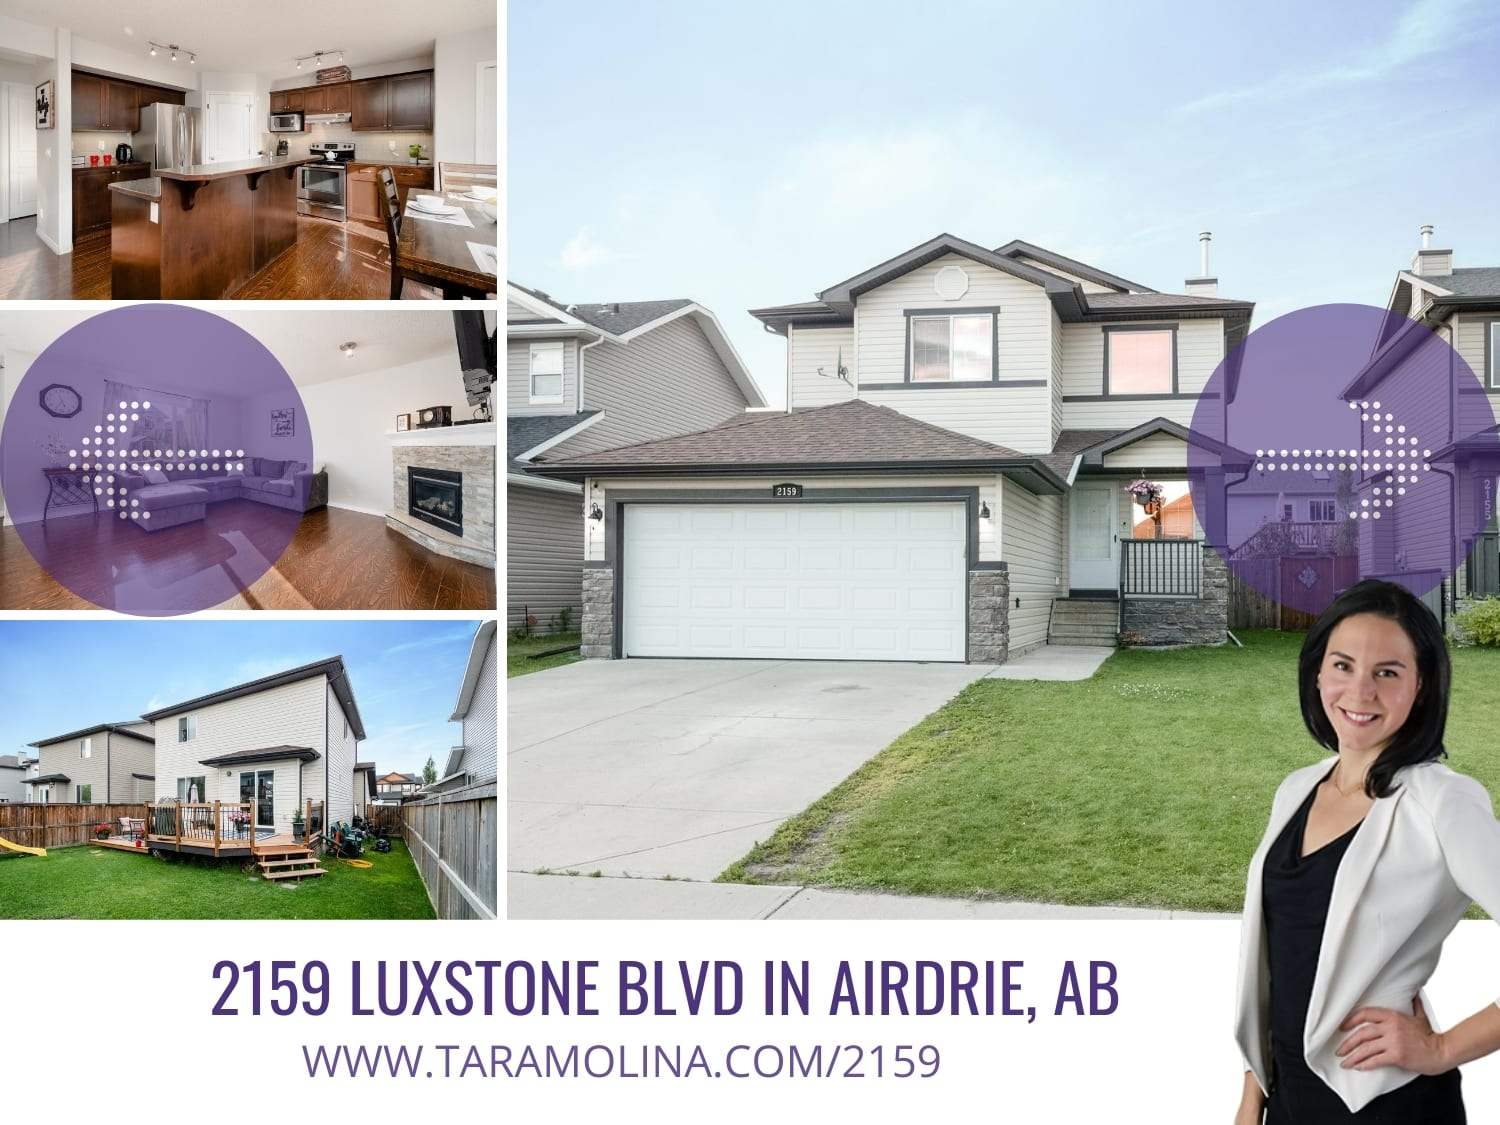 2159 Luxstone Blvd in Airdrie, AB